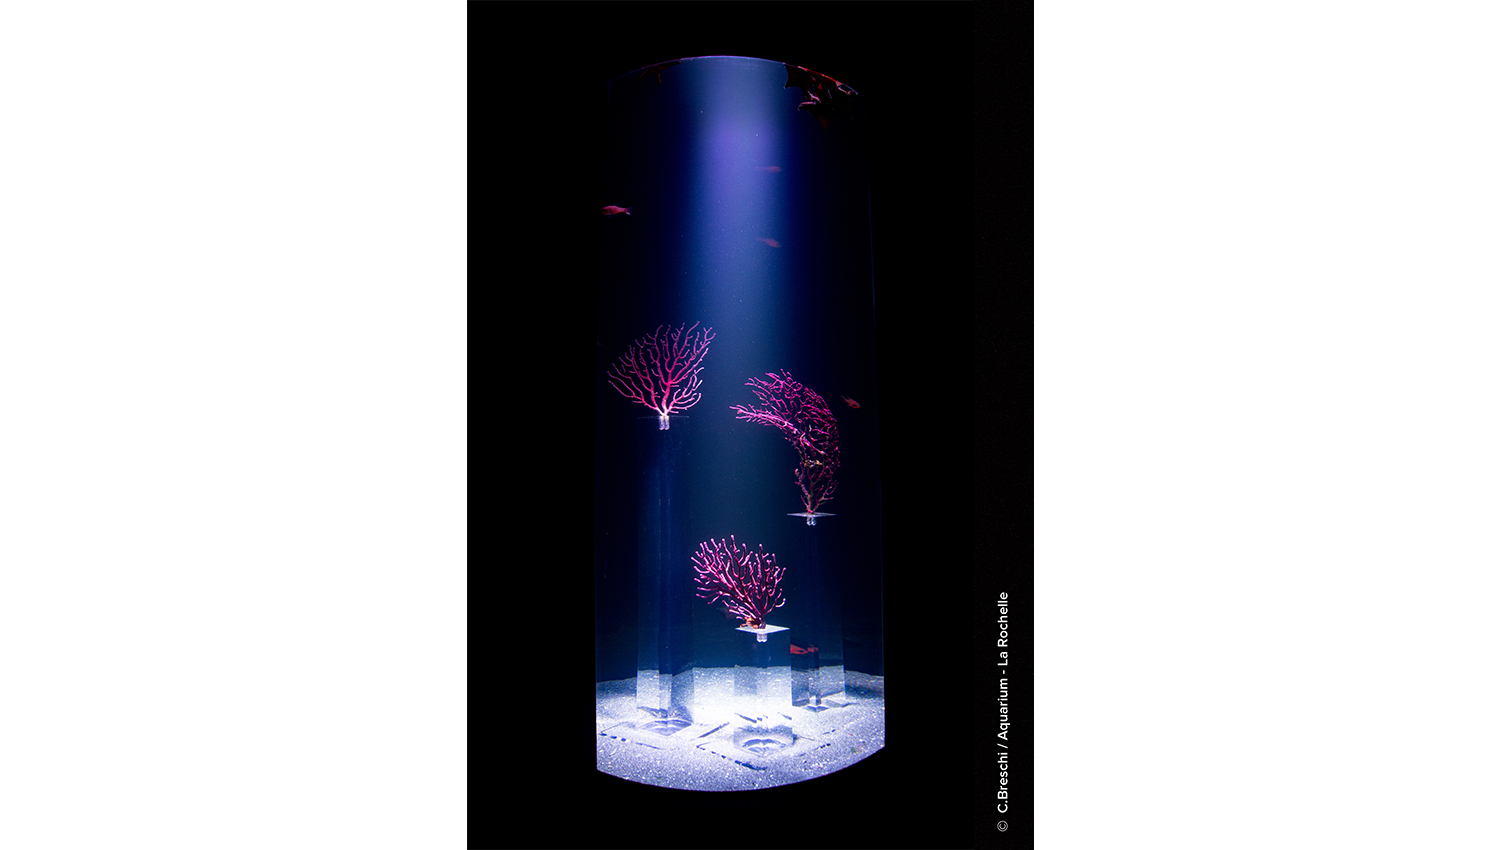 aquarium1-05-sport&culture-equipement&tertiaire-alterlab.jpg